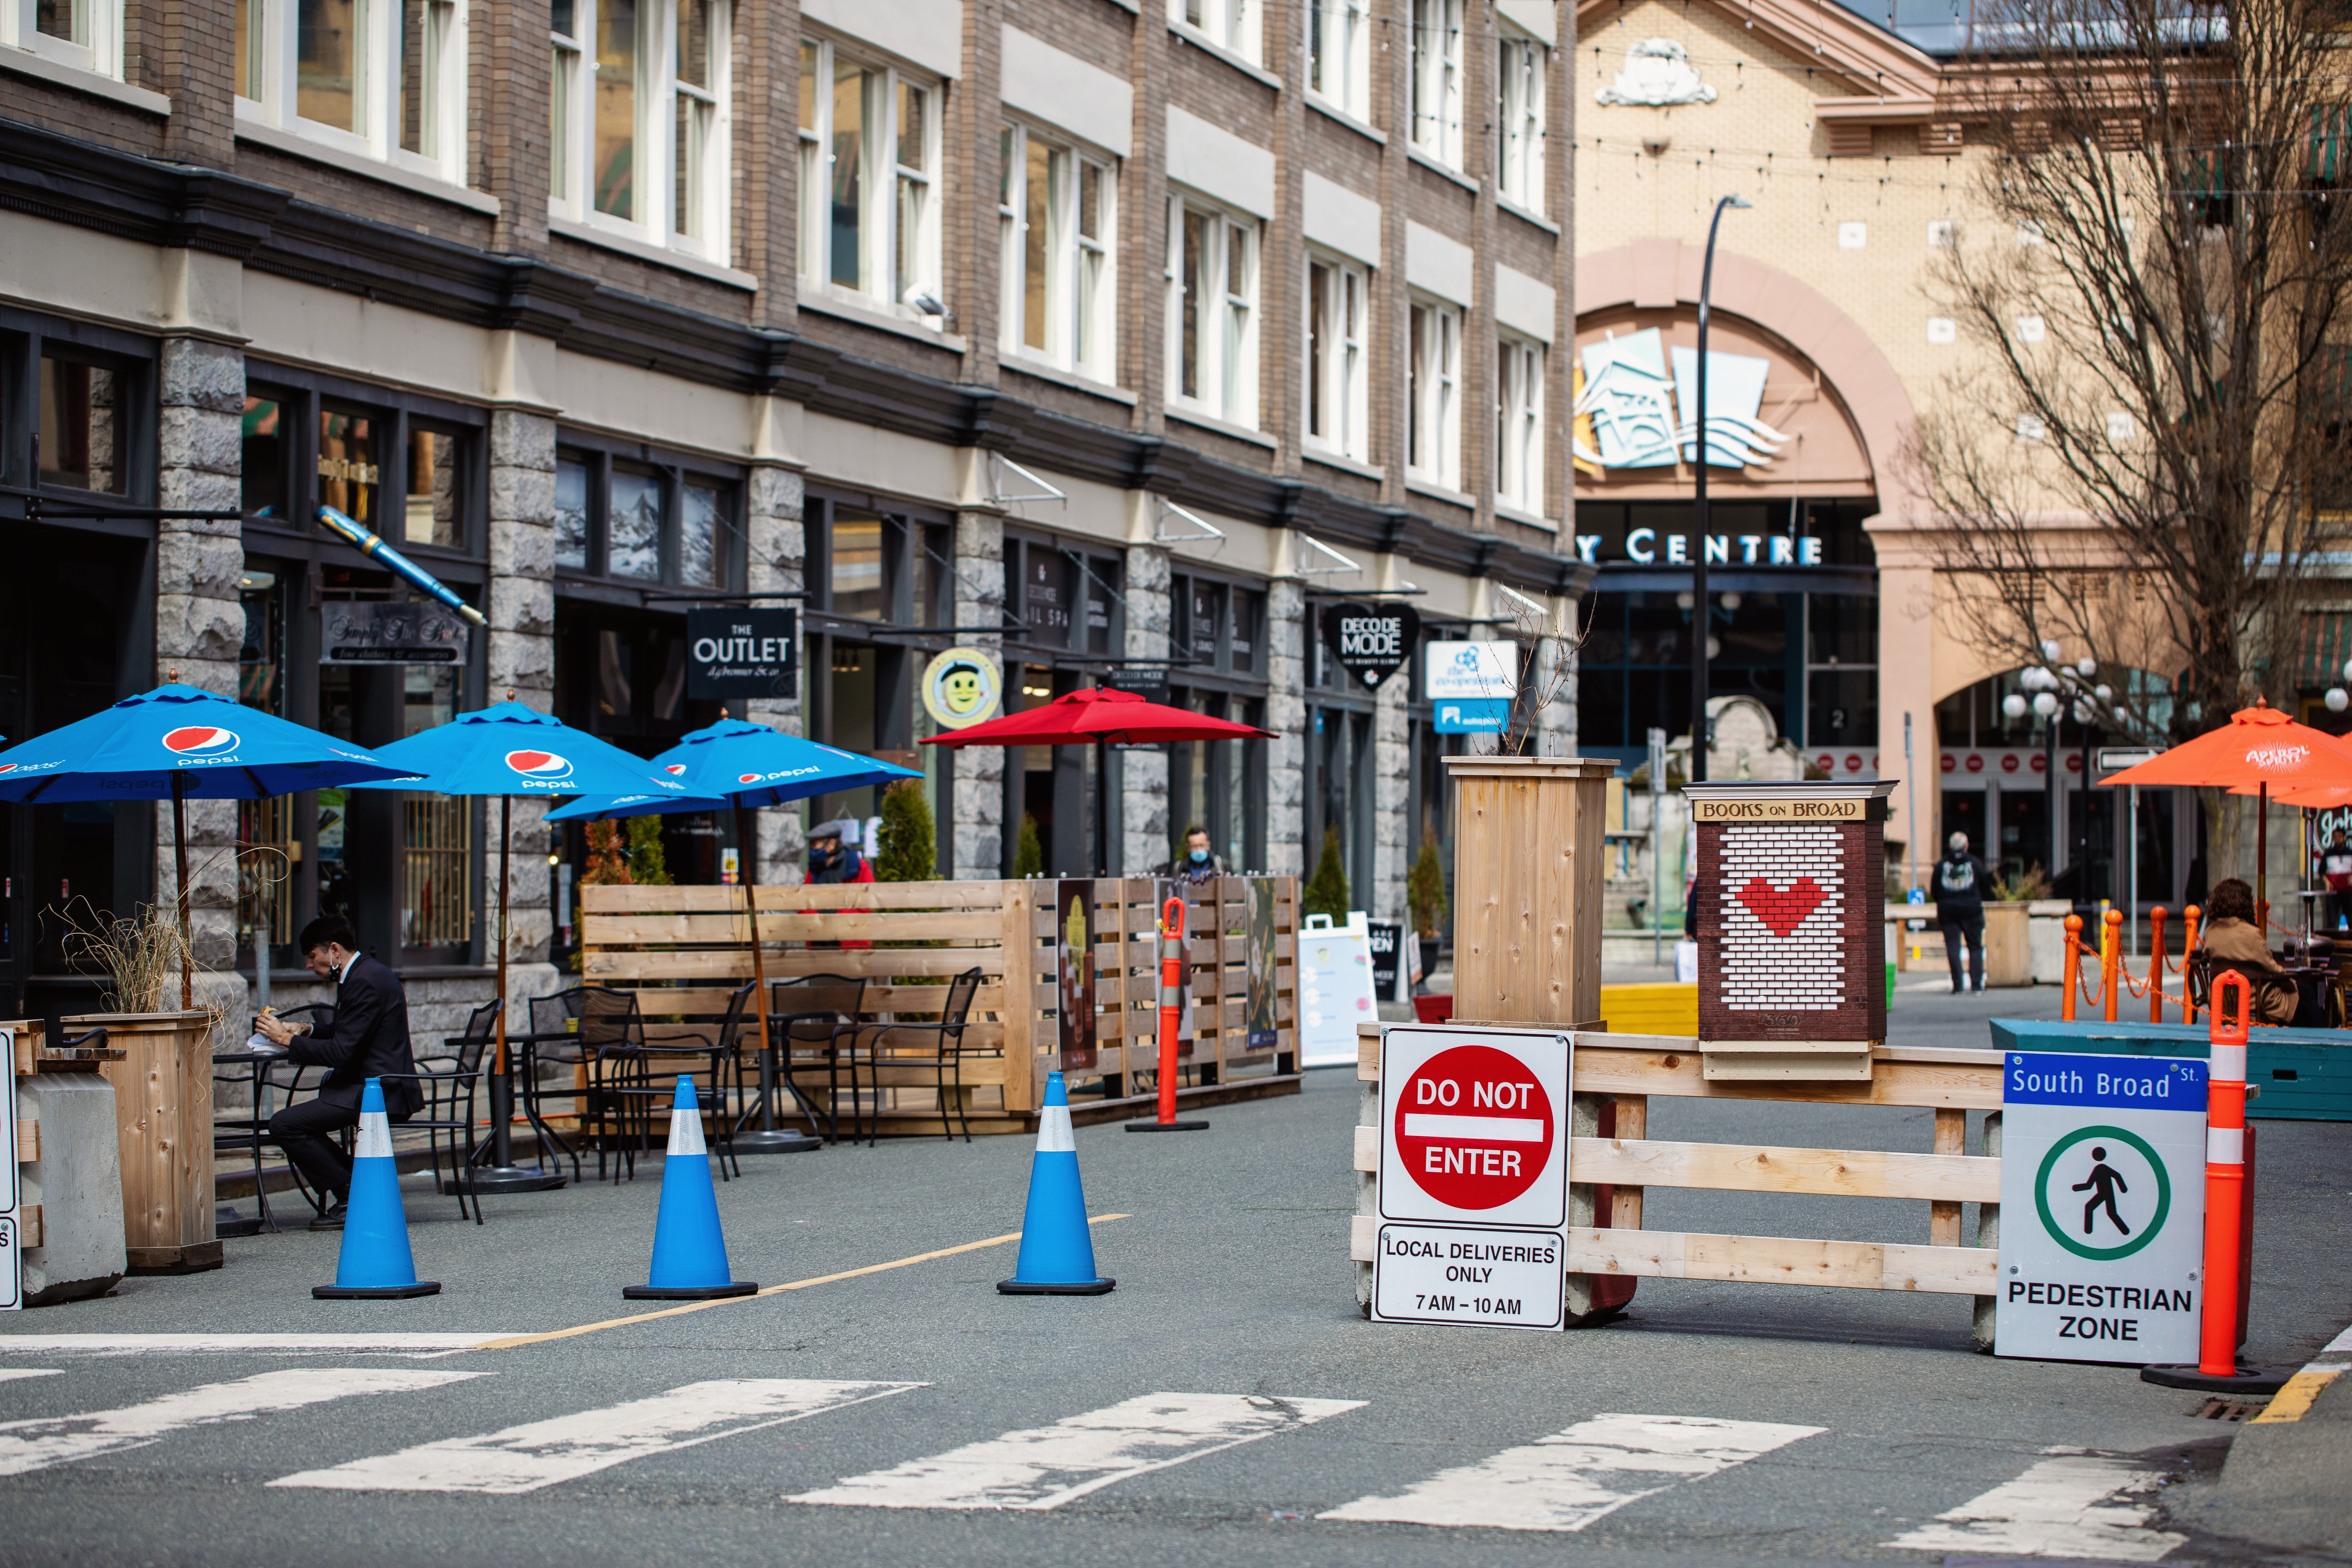 Streets in Victoria, BC closed off for pedestrian use and sidewalk cafes.